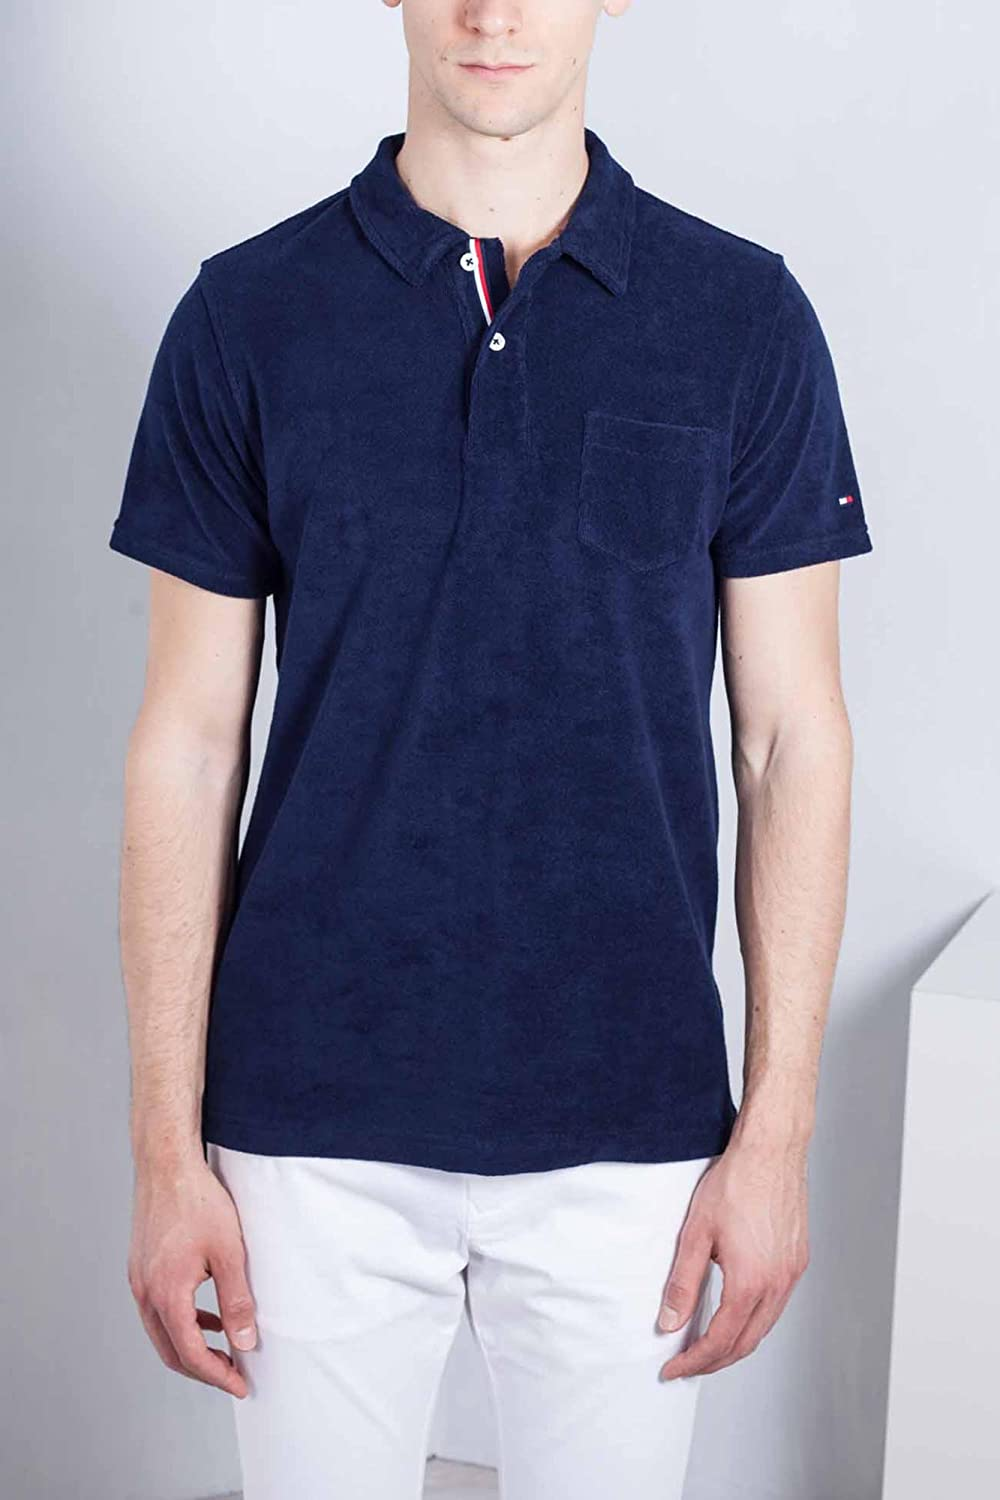 TOMMY HILFIGER Men - Cotton blend towel slim navy blue polo shirt ...